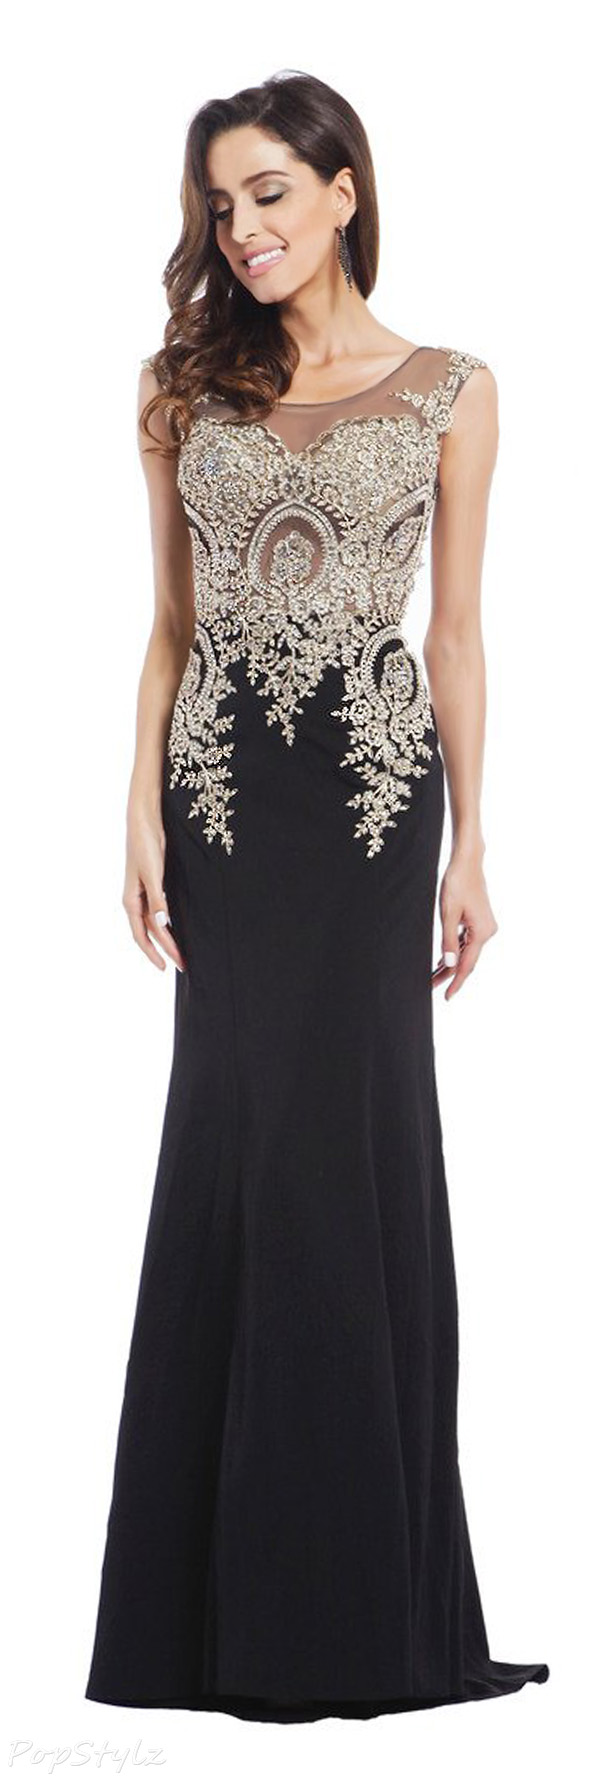 Meier Embroidery Rhinestone Long Formal Evening Dress